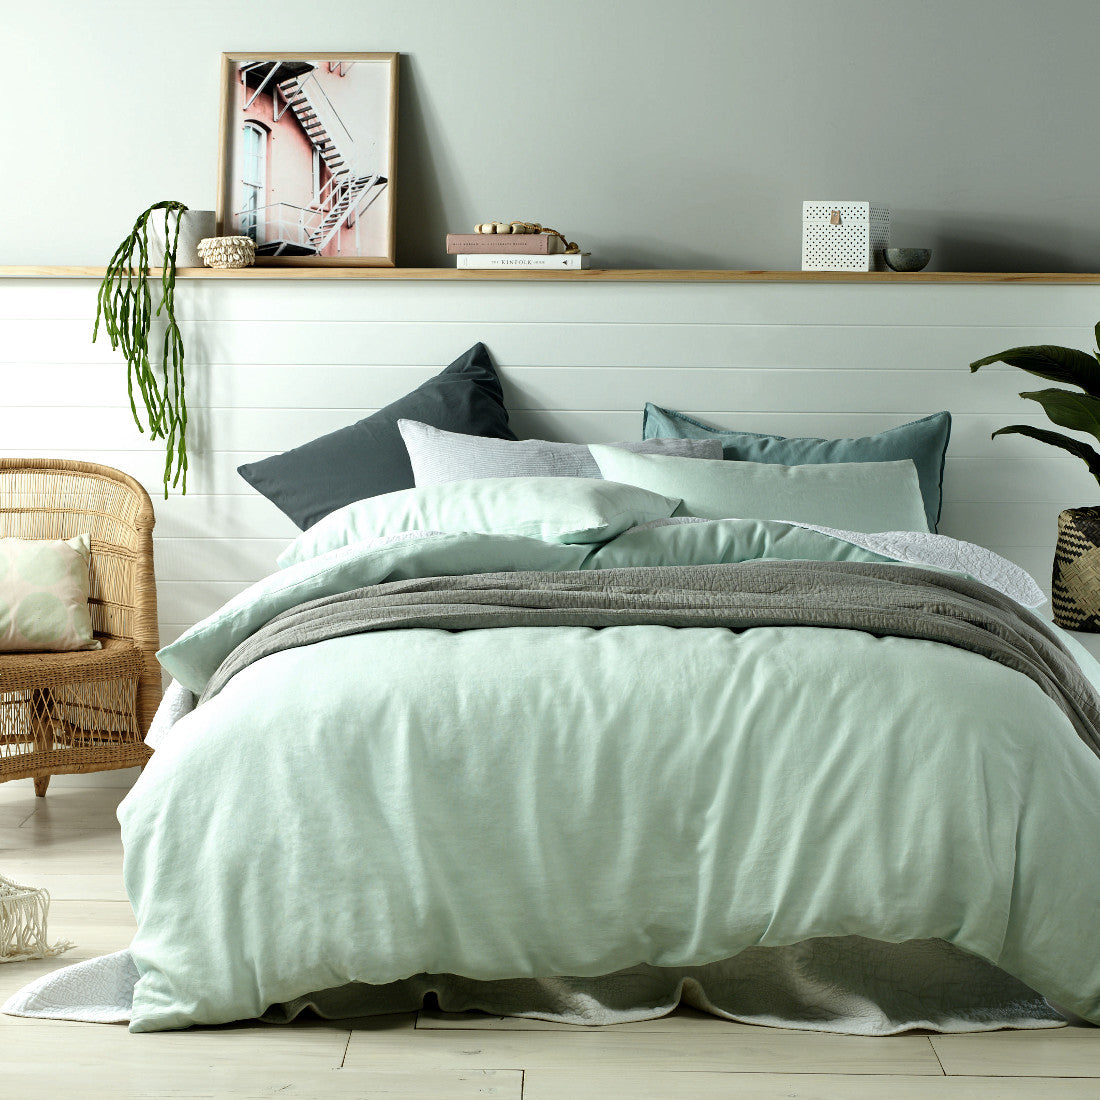 Mist green 100% linen quilt cover set